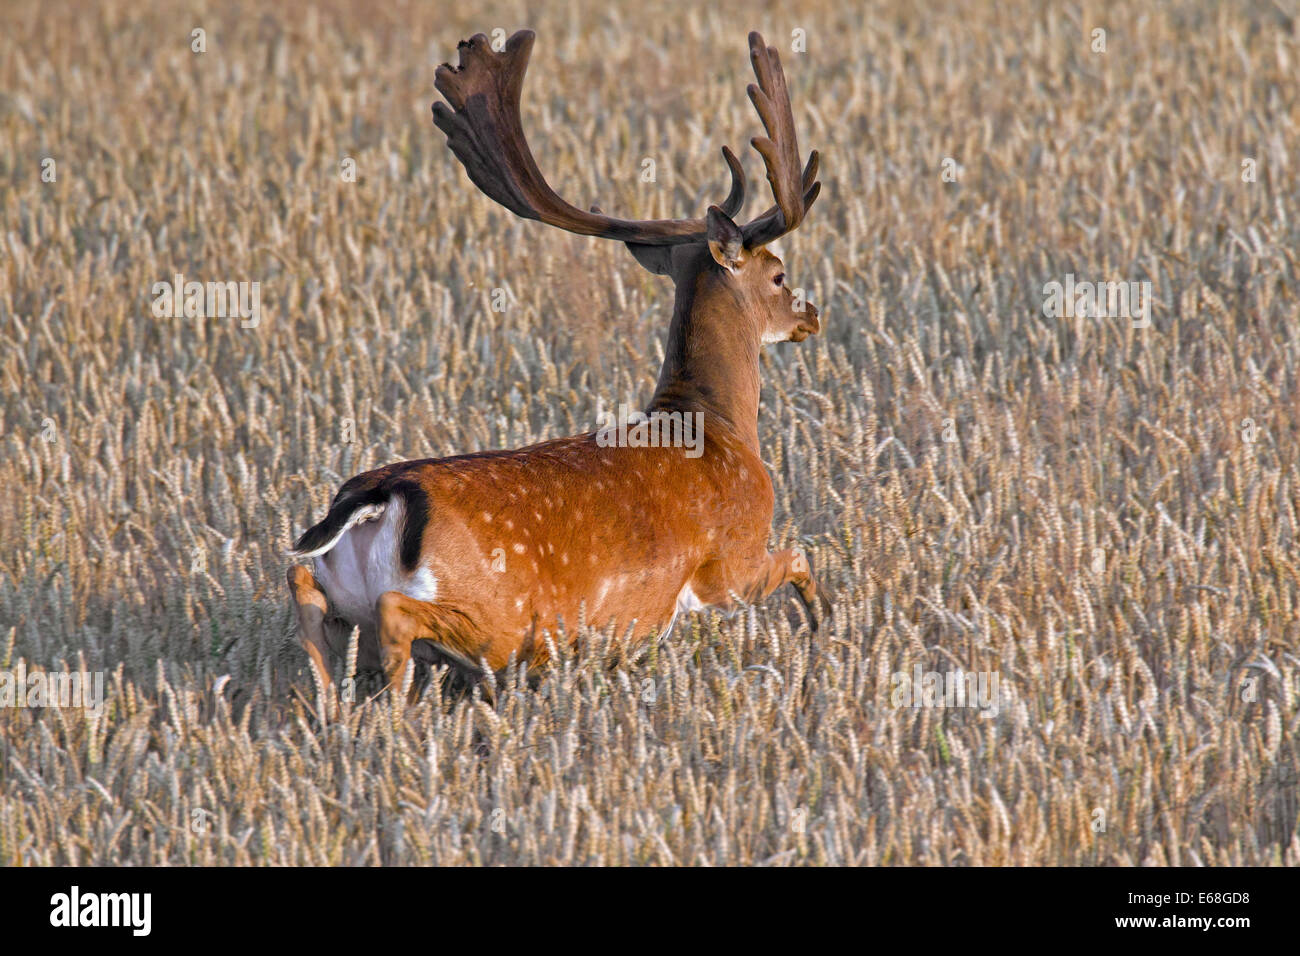 Fallow deer (Dama dama) buck with antlers covered in velvet running through wheat field in summer - Stock Image